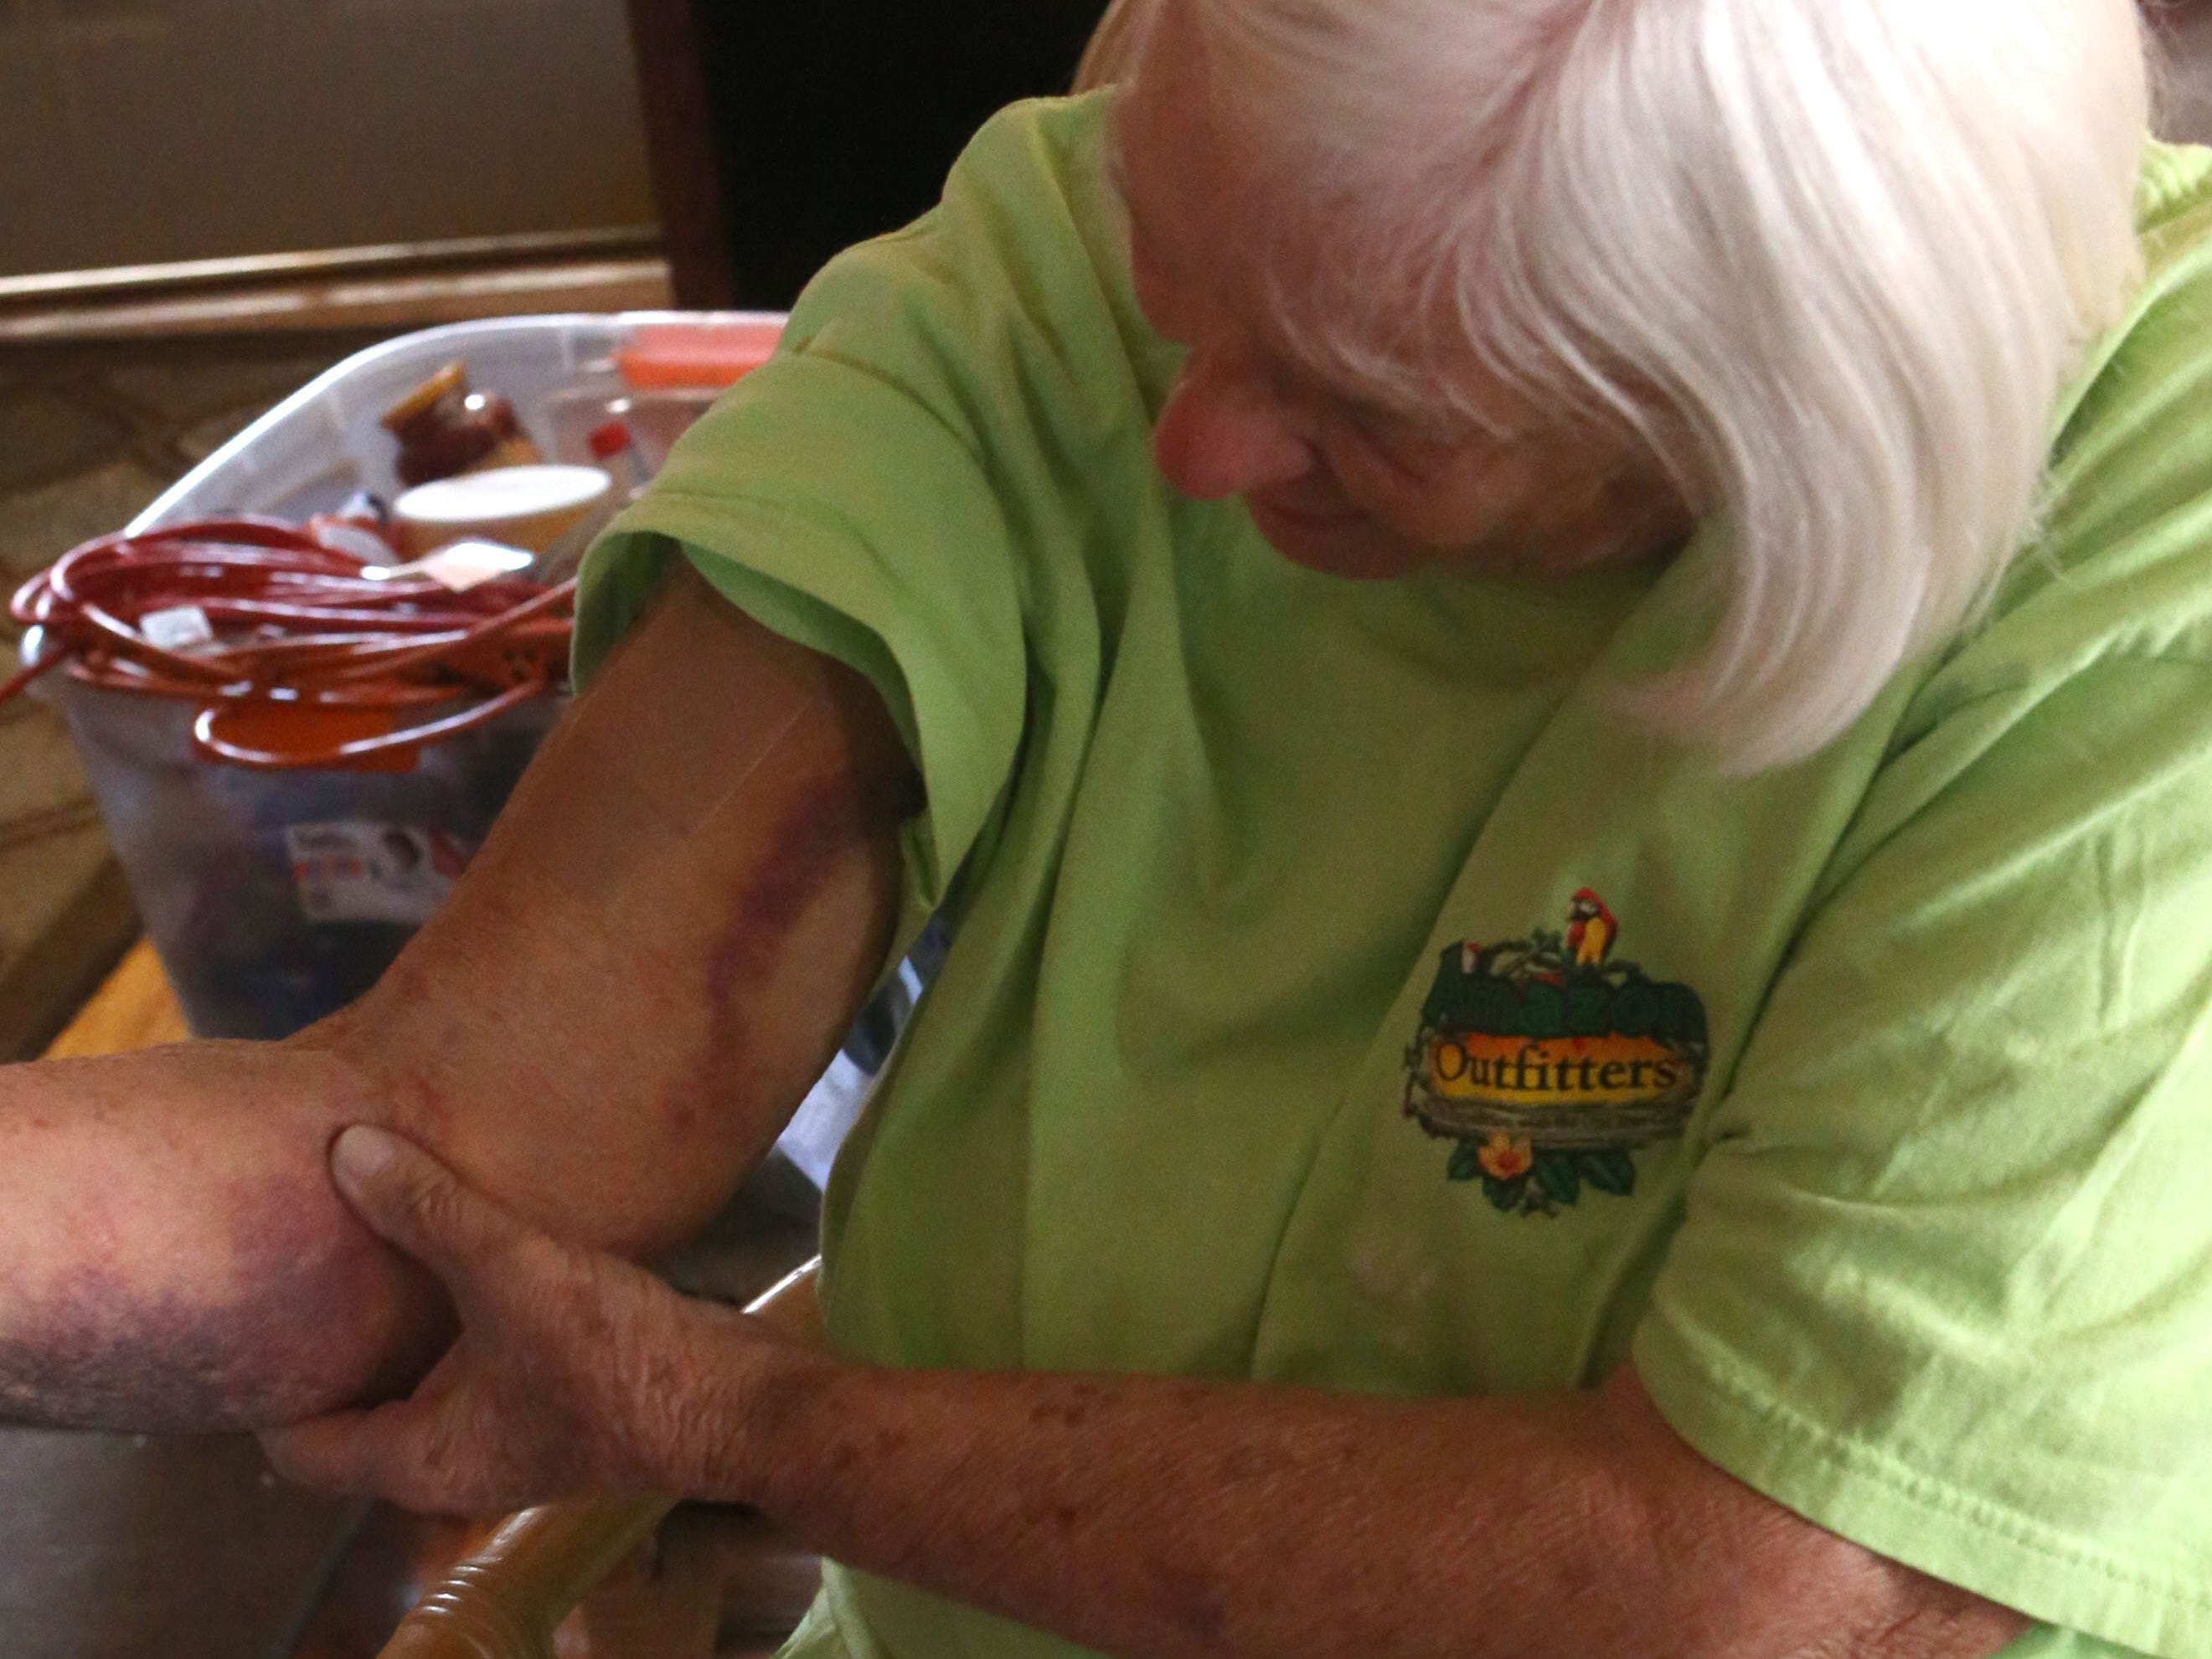 Elizabeth Radney, grandmother of Sarah Radney, an 11 year old girl who died during Hurricane Michael in Donalsonville, Ga., shows some of the bruising she received from the post and concrete on Thursday, Oct. 18, 2018.